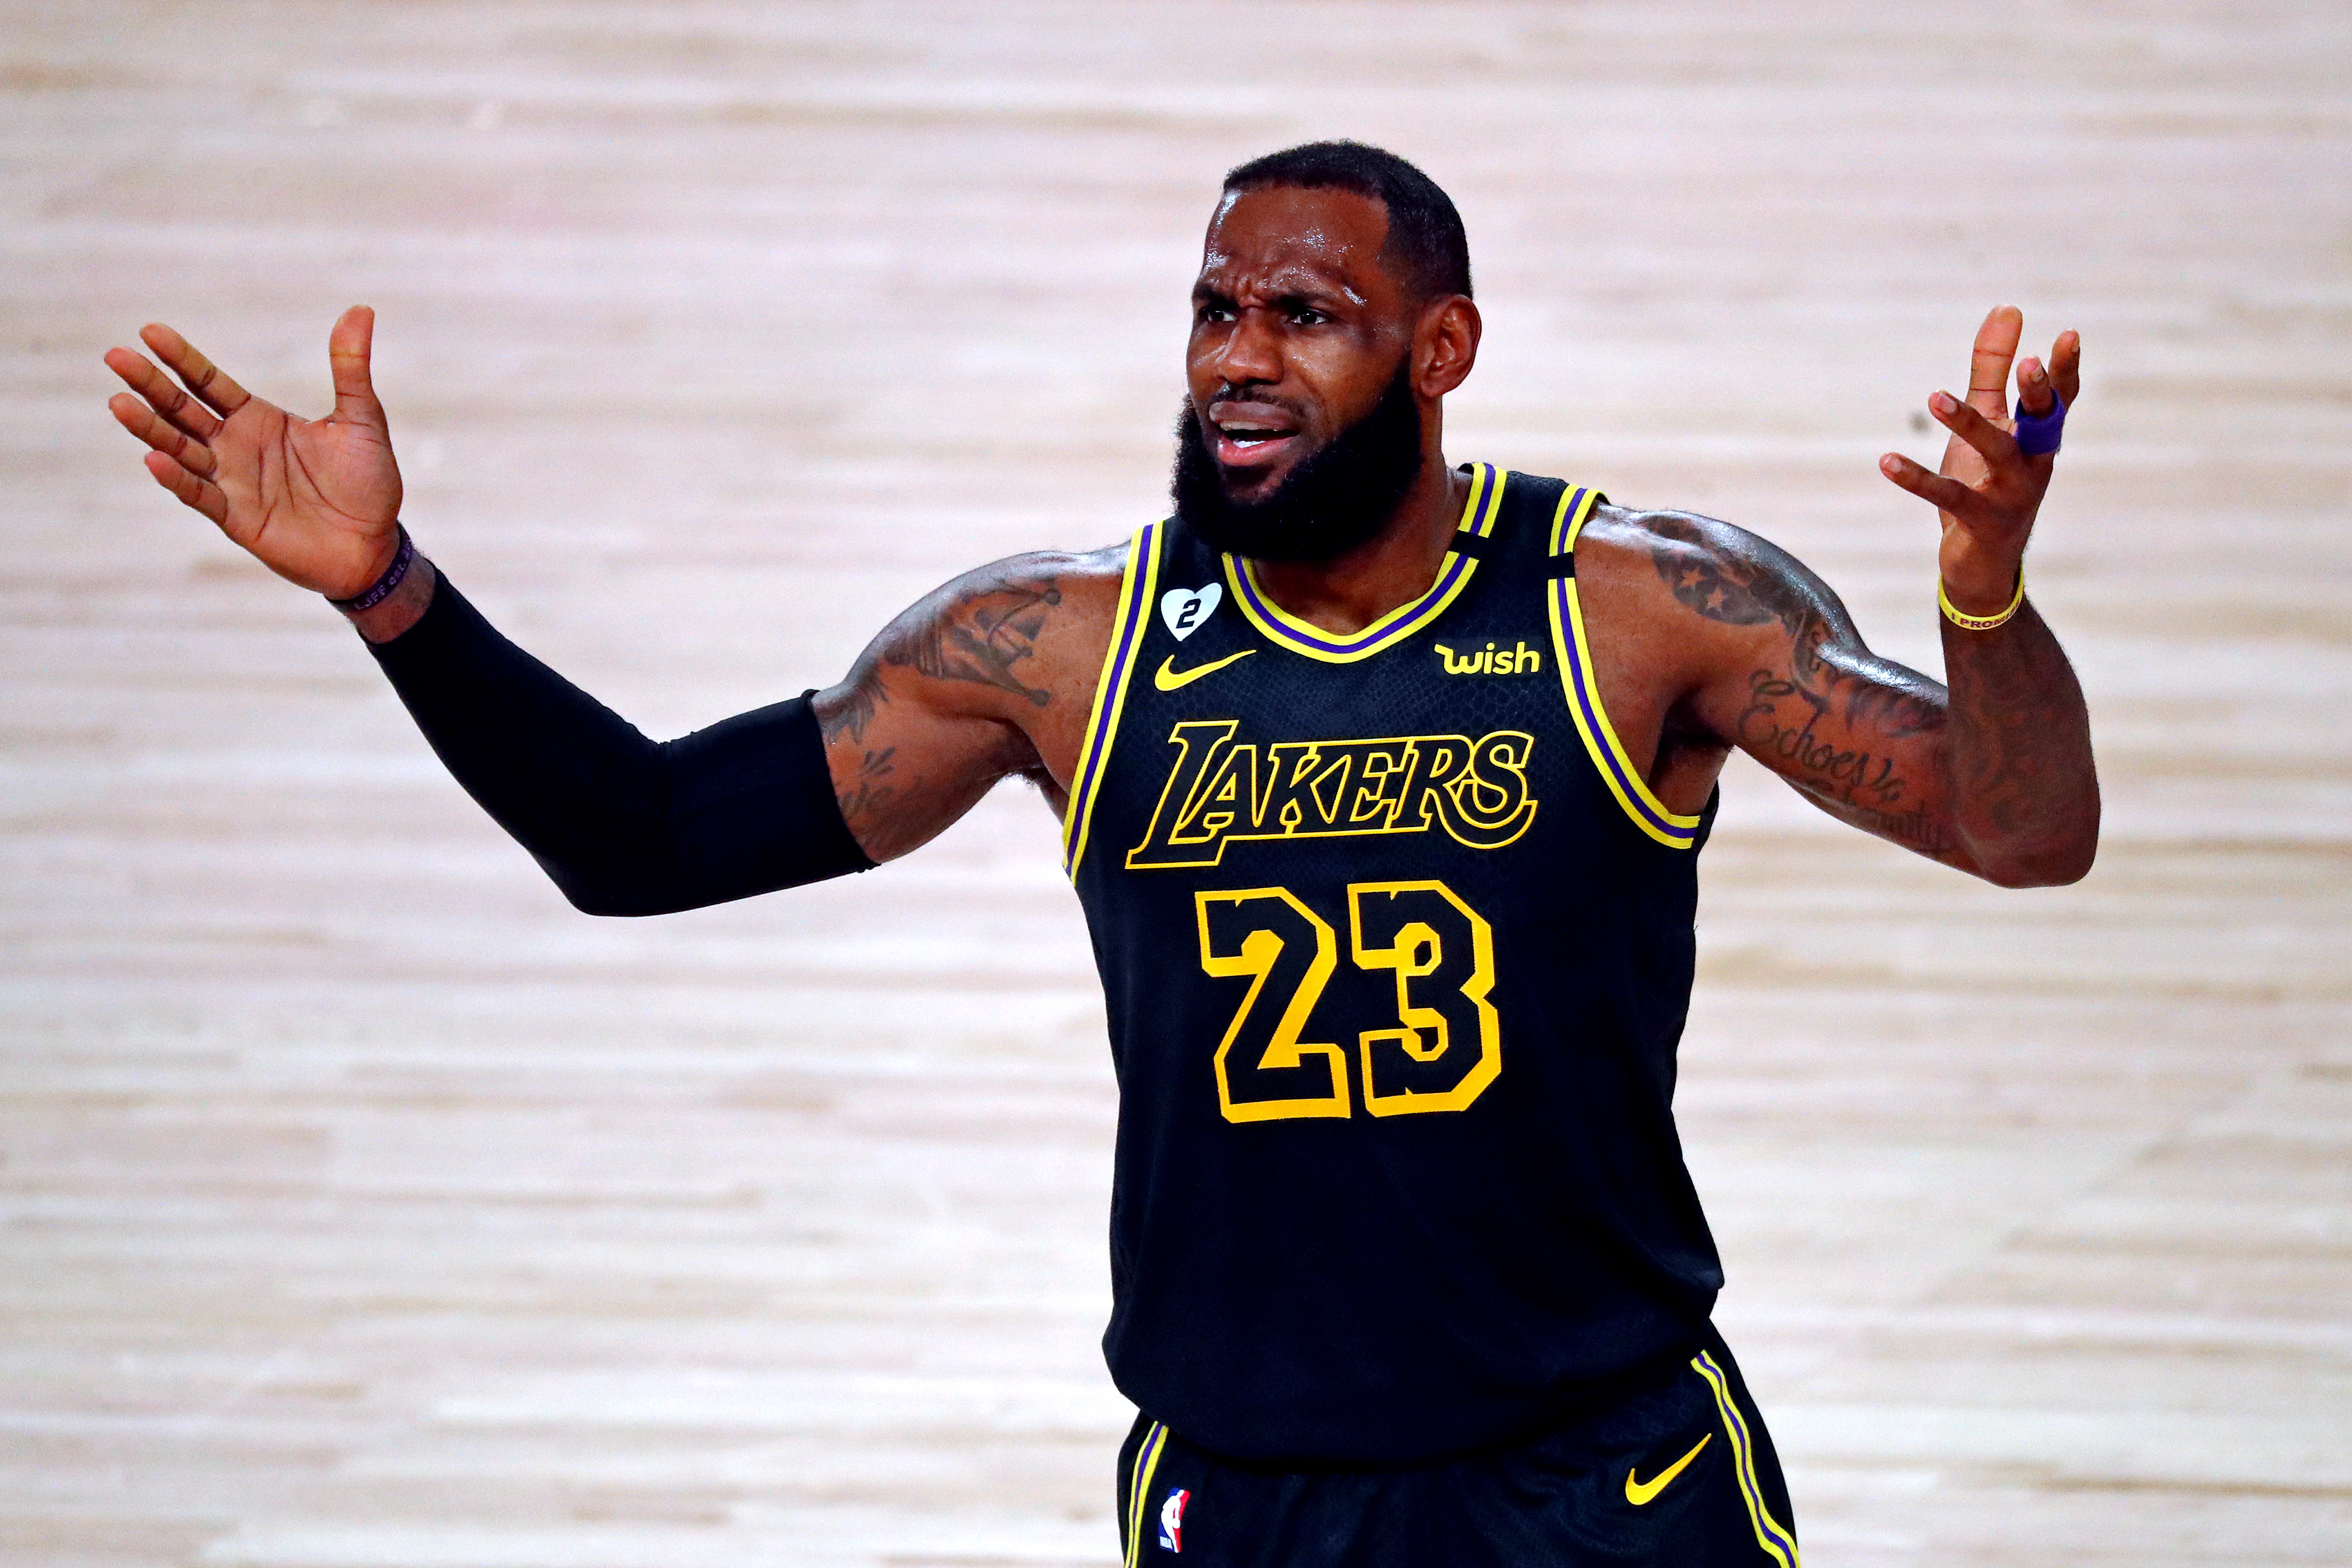 LeBron James complaining about MVP votes is not very king ...